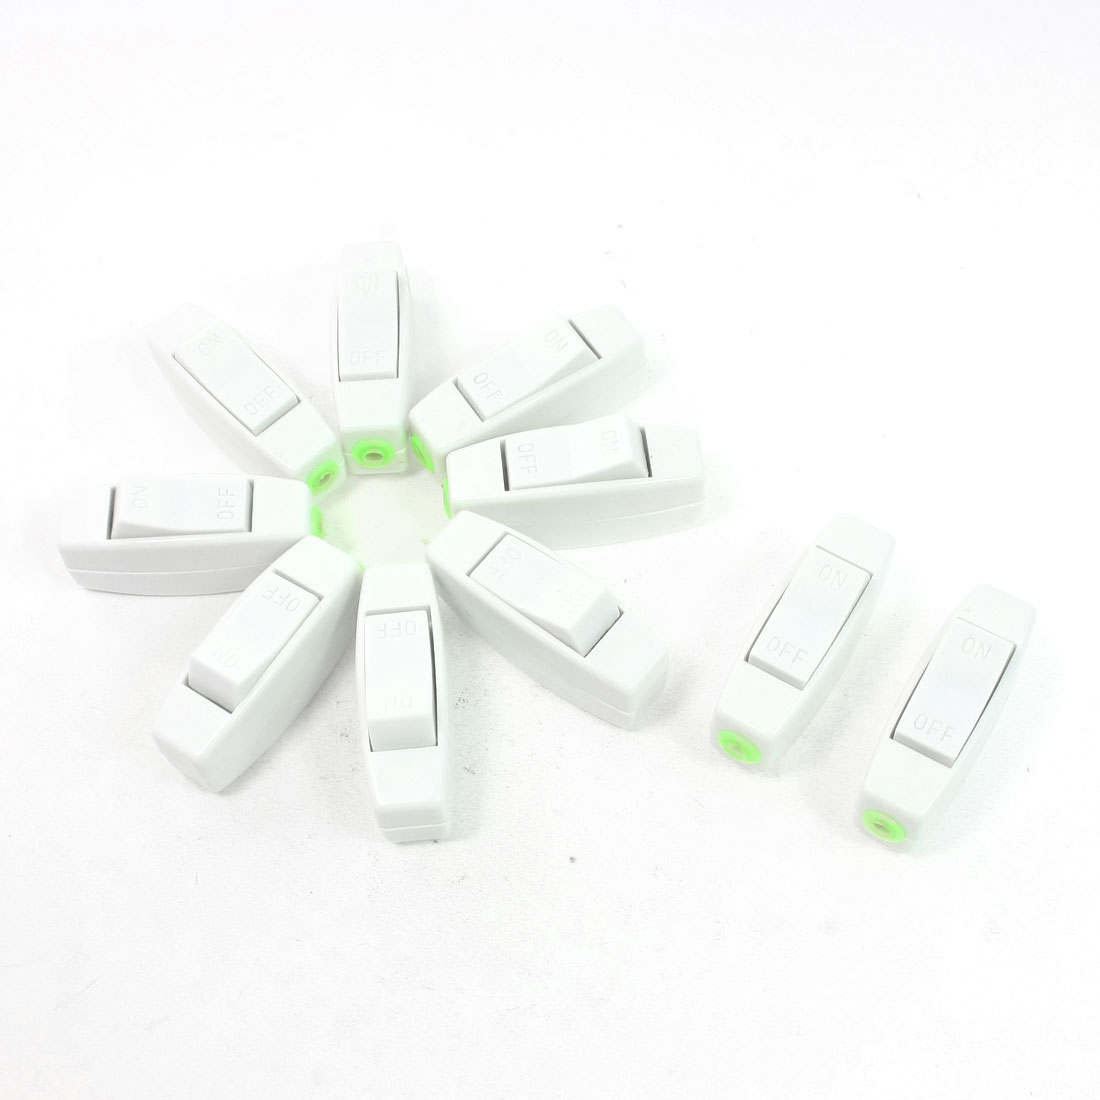 10 Pcs 250VAC 3A ON/OFF Button In Line Cord Switch White for Bedroom